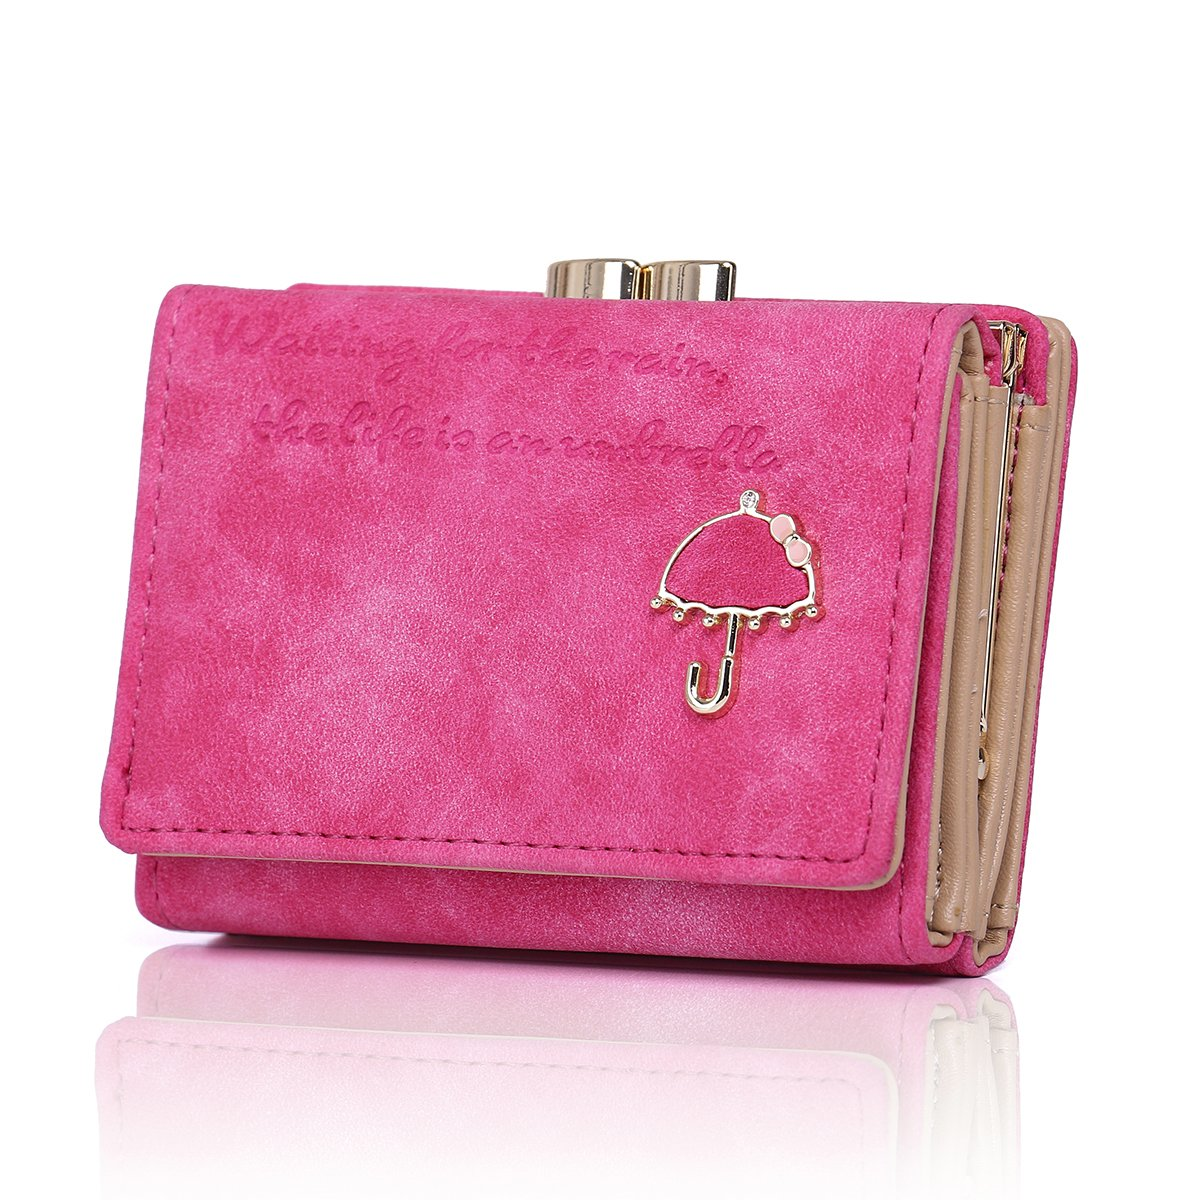 APHISON Women's Nubuck Leather Wallet Card Holder Cute Small Coin Purse for Lady Kiss Lock Closure/Gift for Girls(Gift Box) 330PQJ13Blue